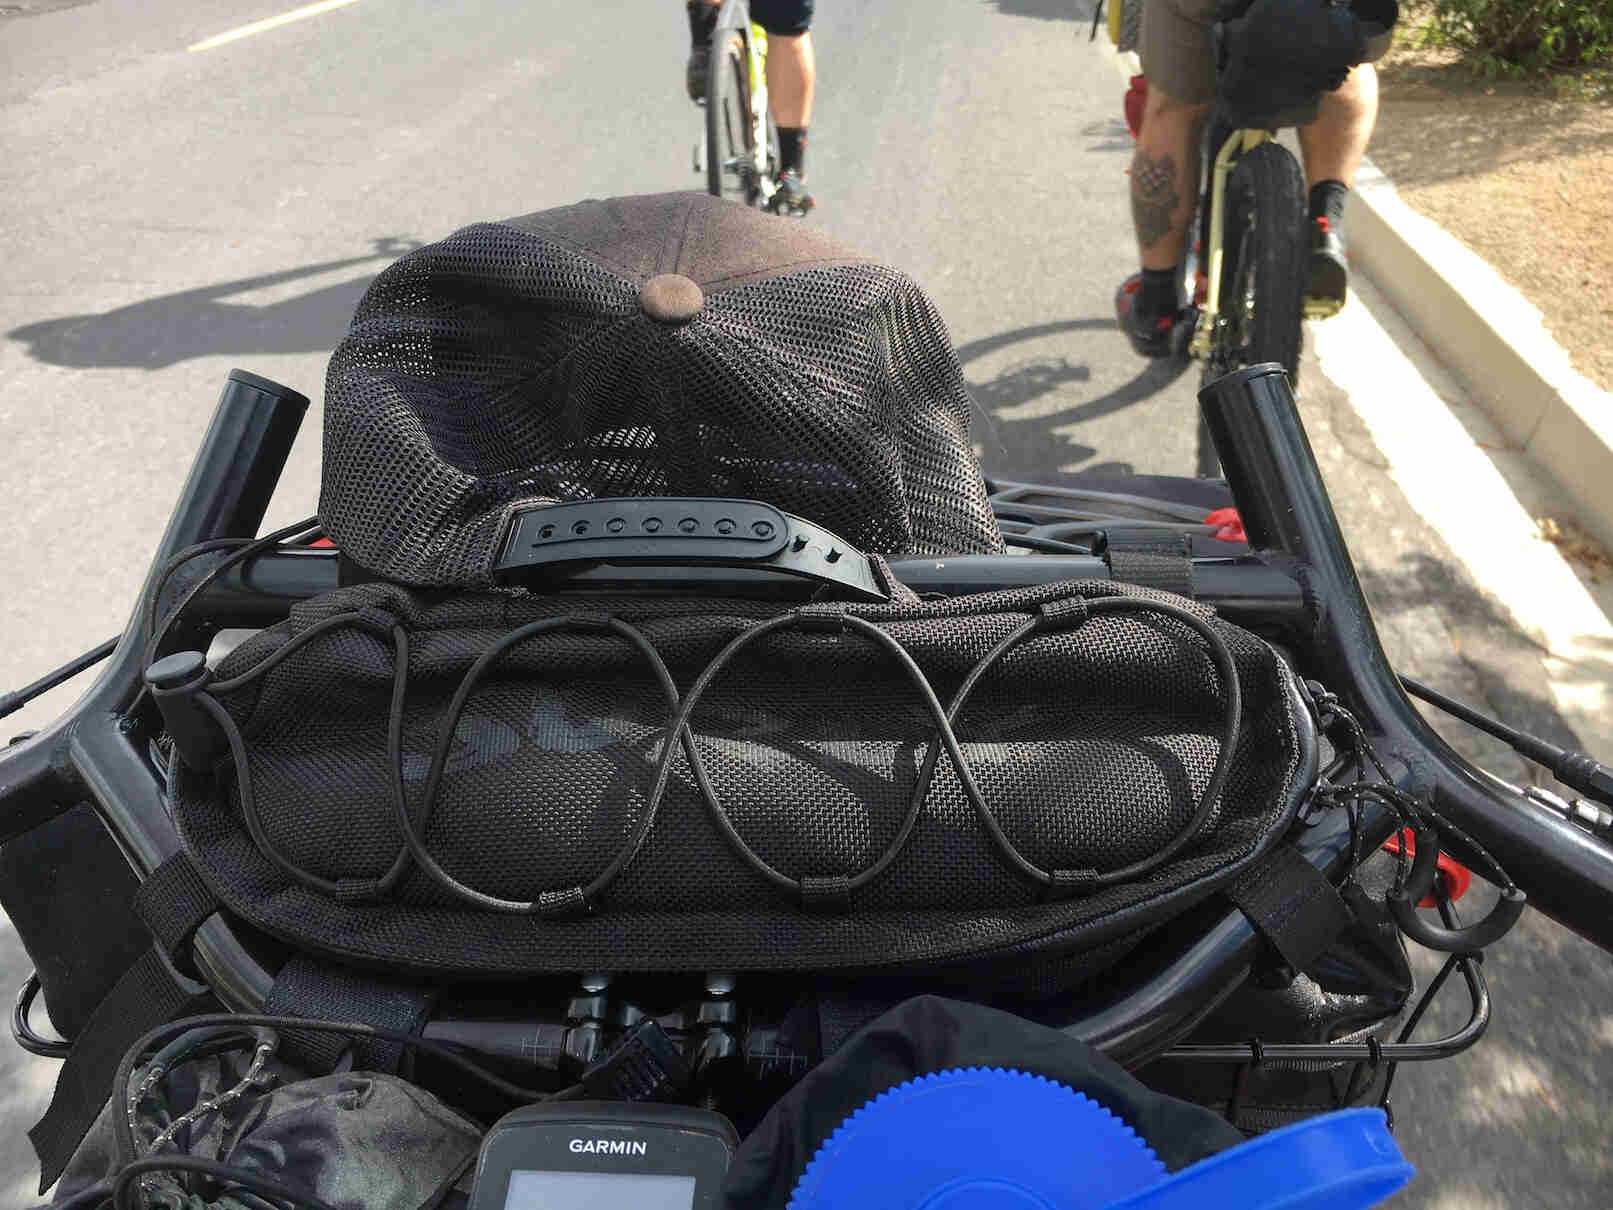 Downward close up of the handlebars loaded with gear on a bike with other cyclist in front view